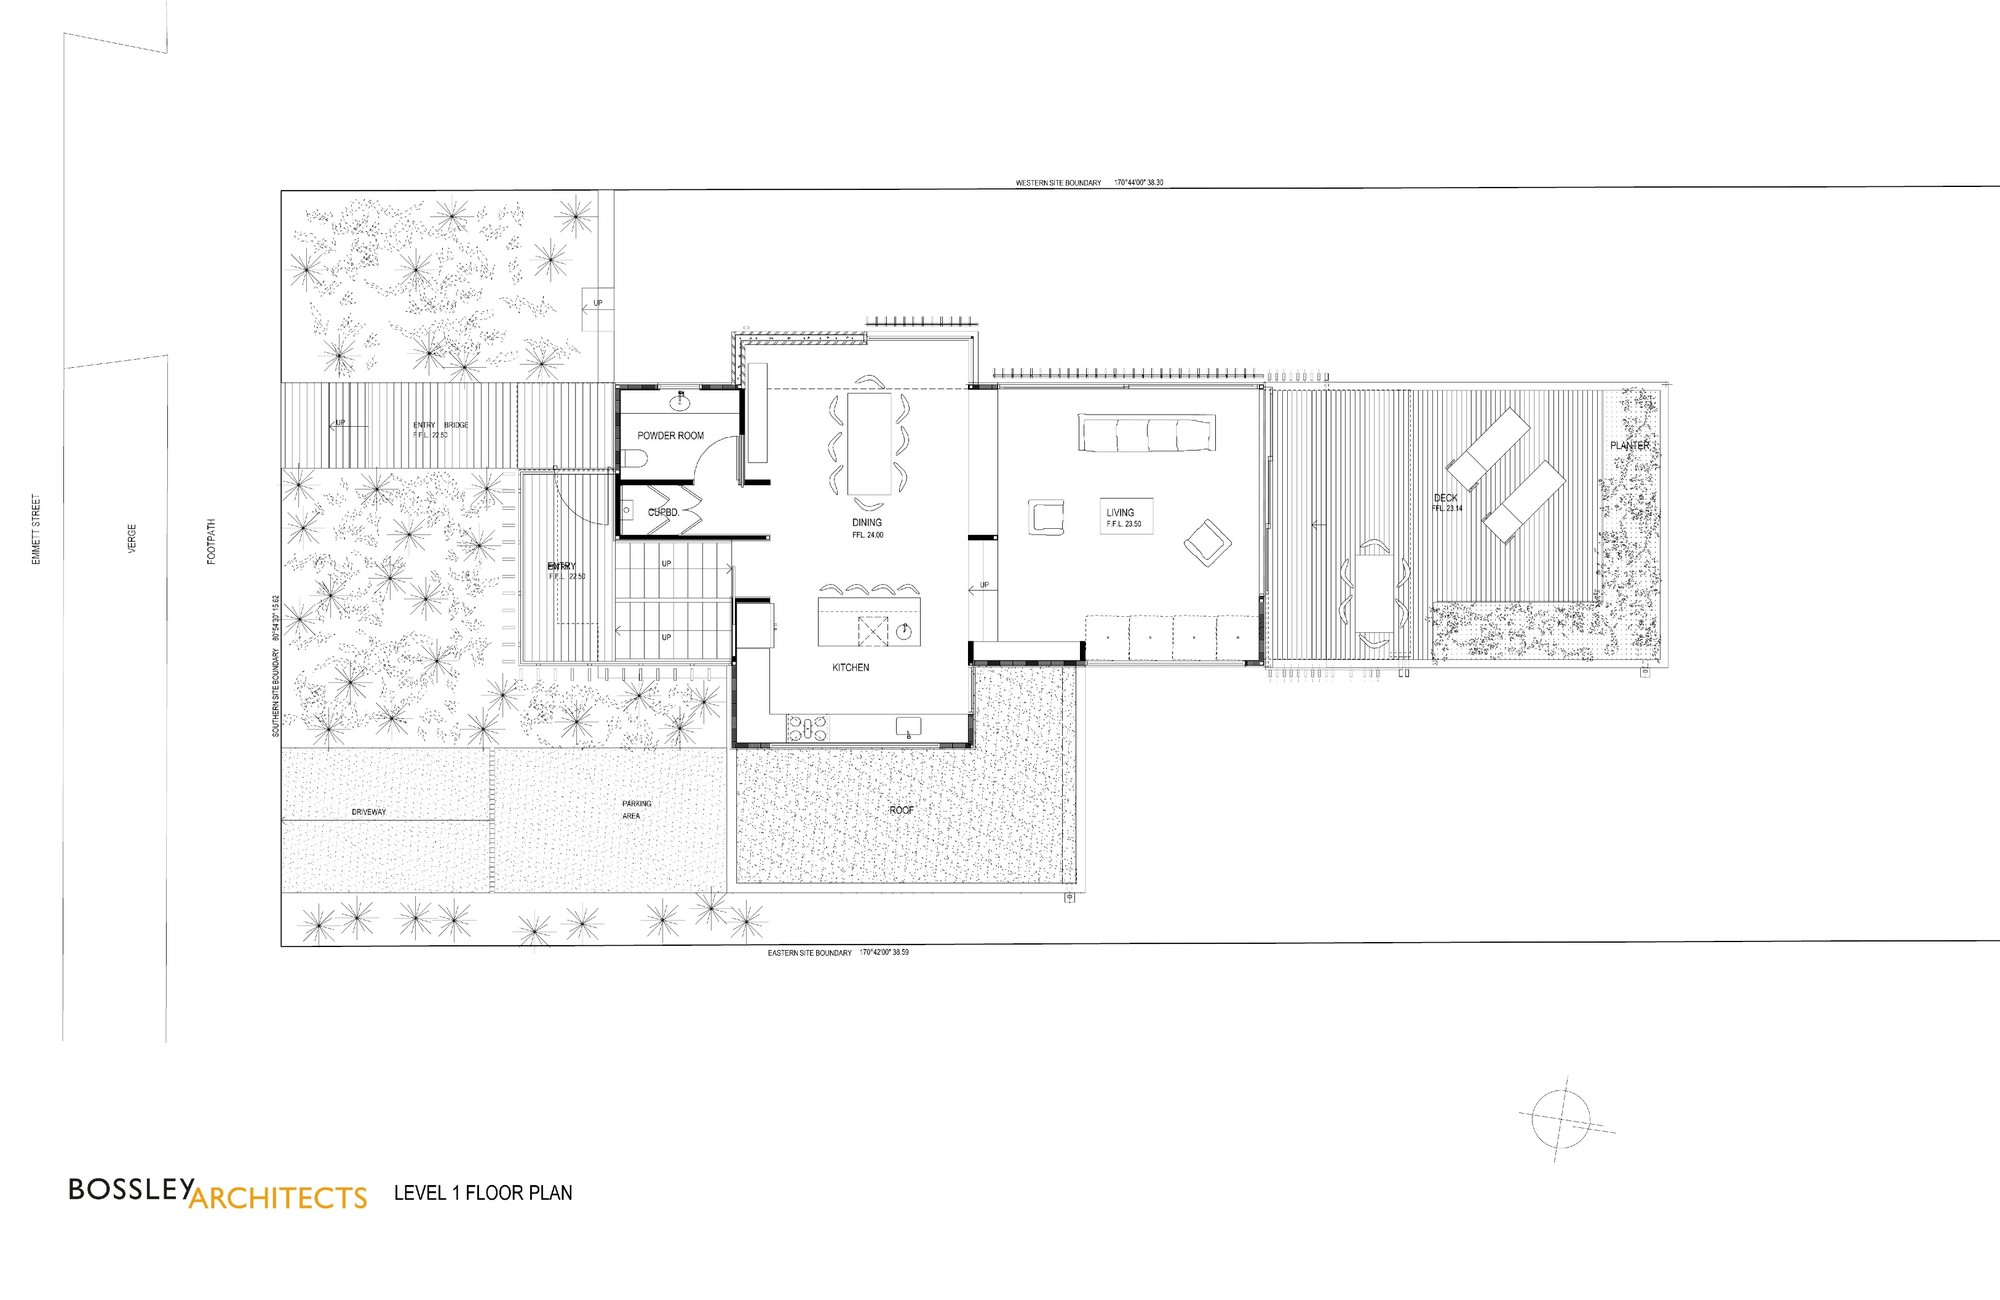 Simple 1 Floor House Plans Gallery Of Brown Vujcich House Bossley Architect S 18